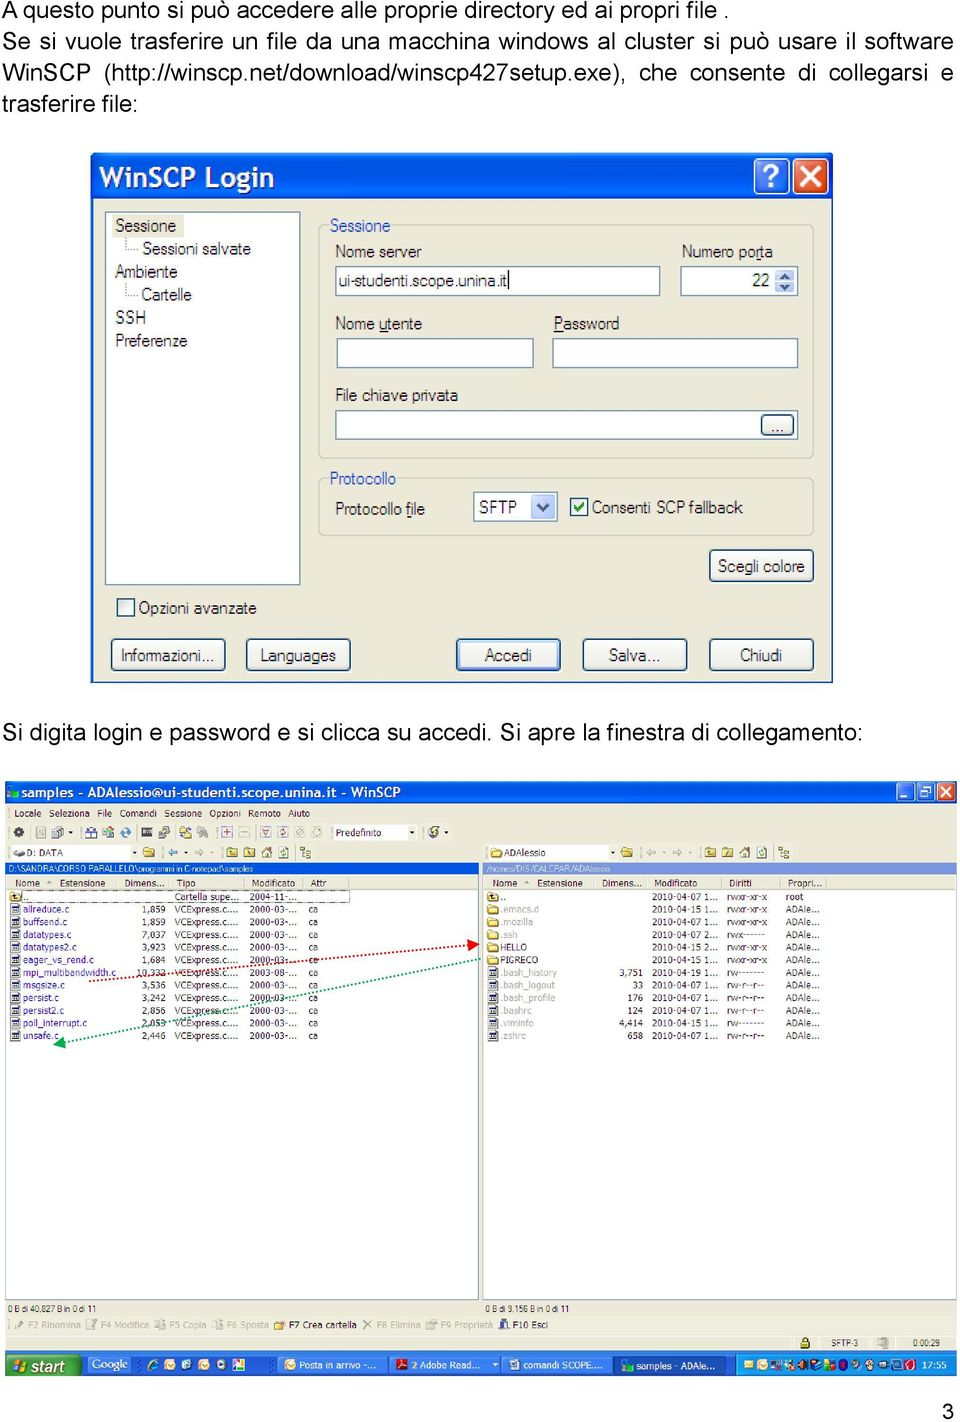 software WinSCP (http://winscp.net/download/winscp427setup.